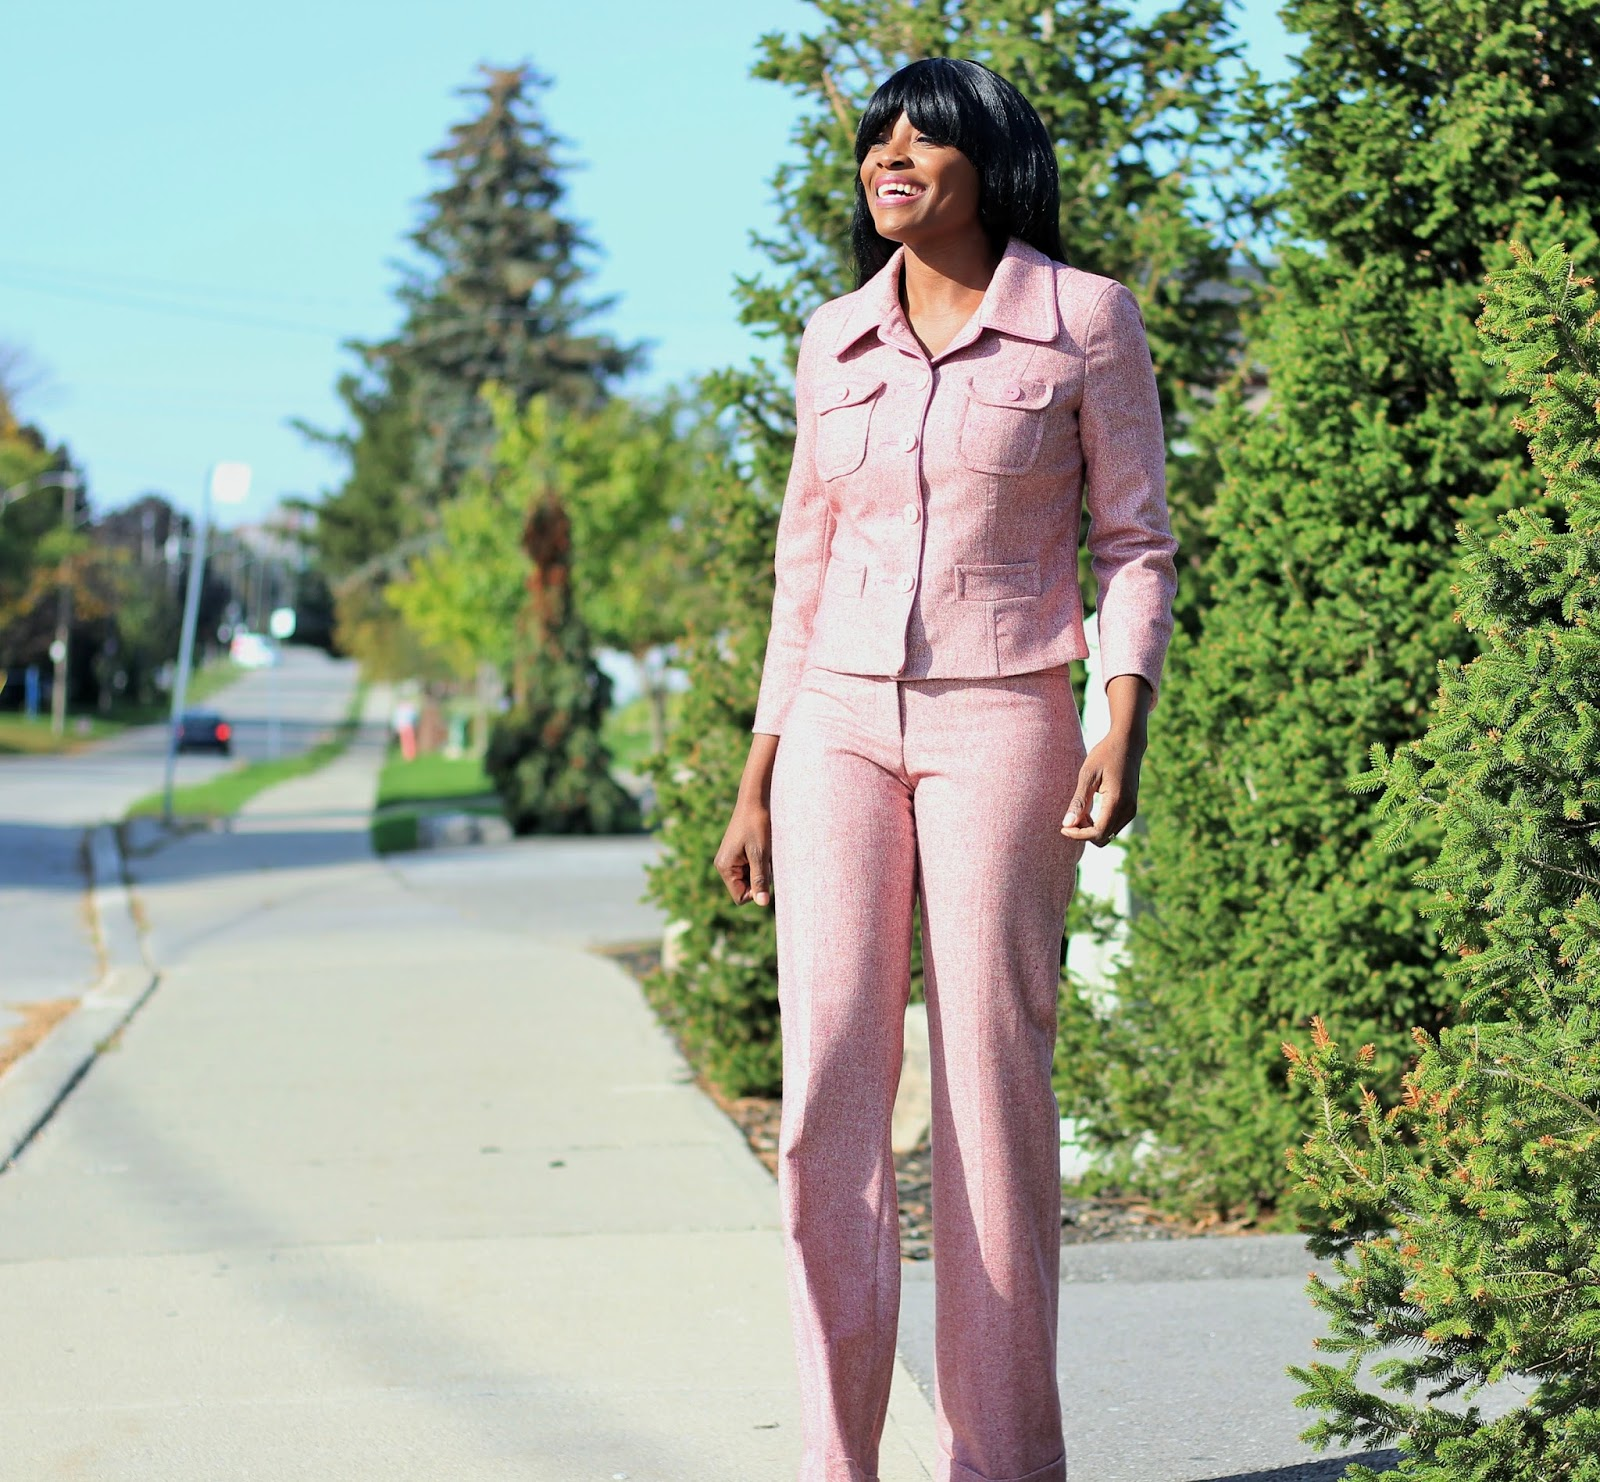 PANTSUIT BY BEBE